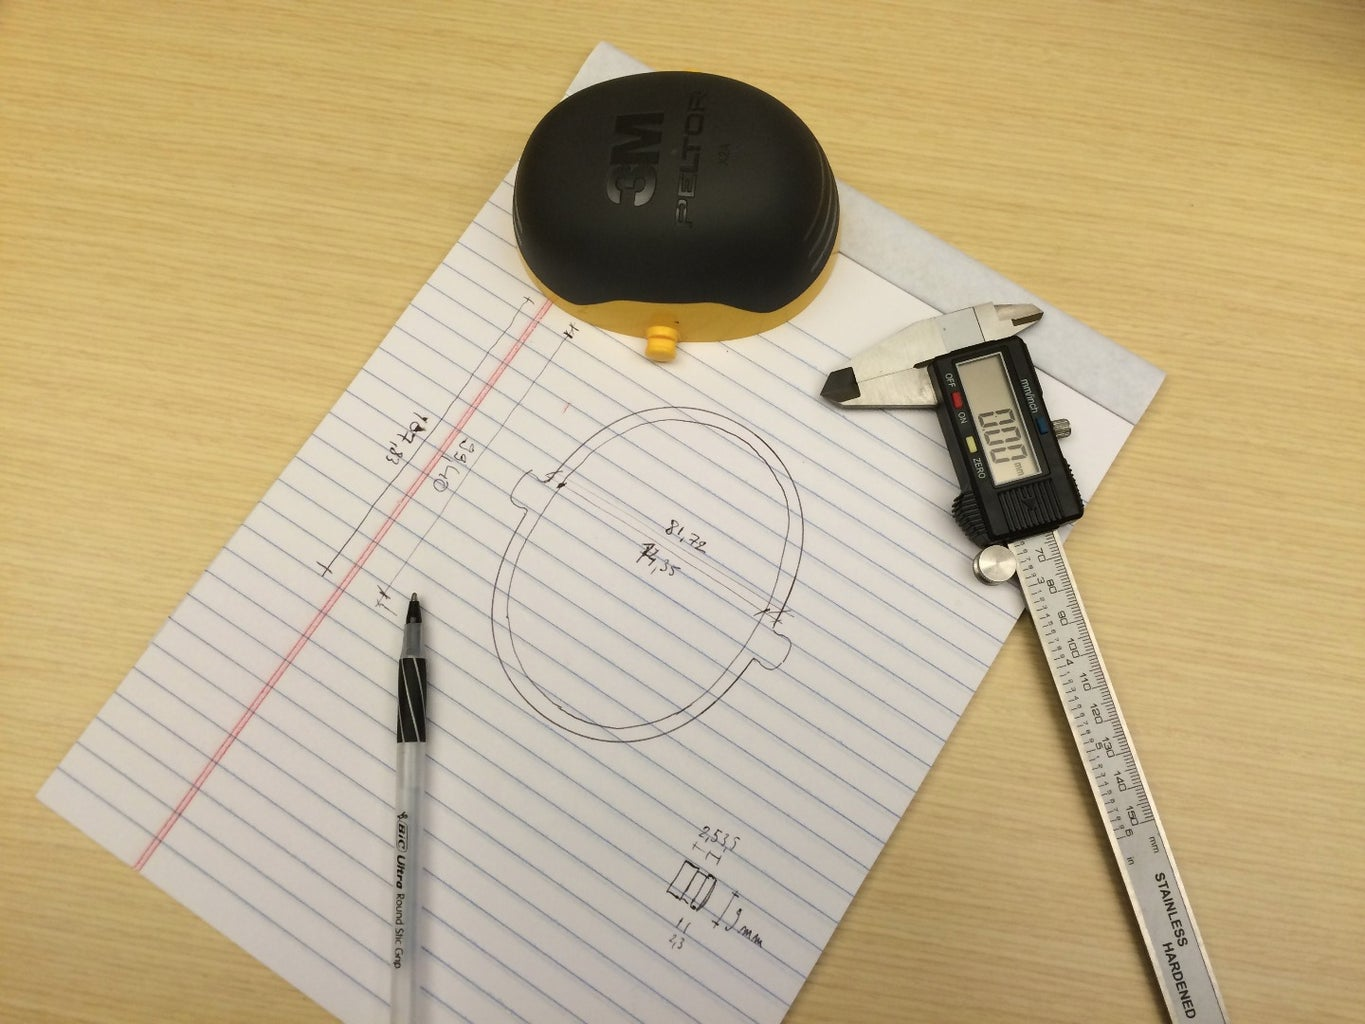 Step 1: Document and Measure